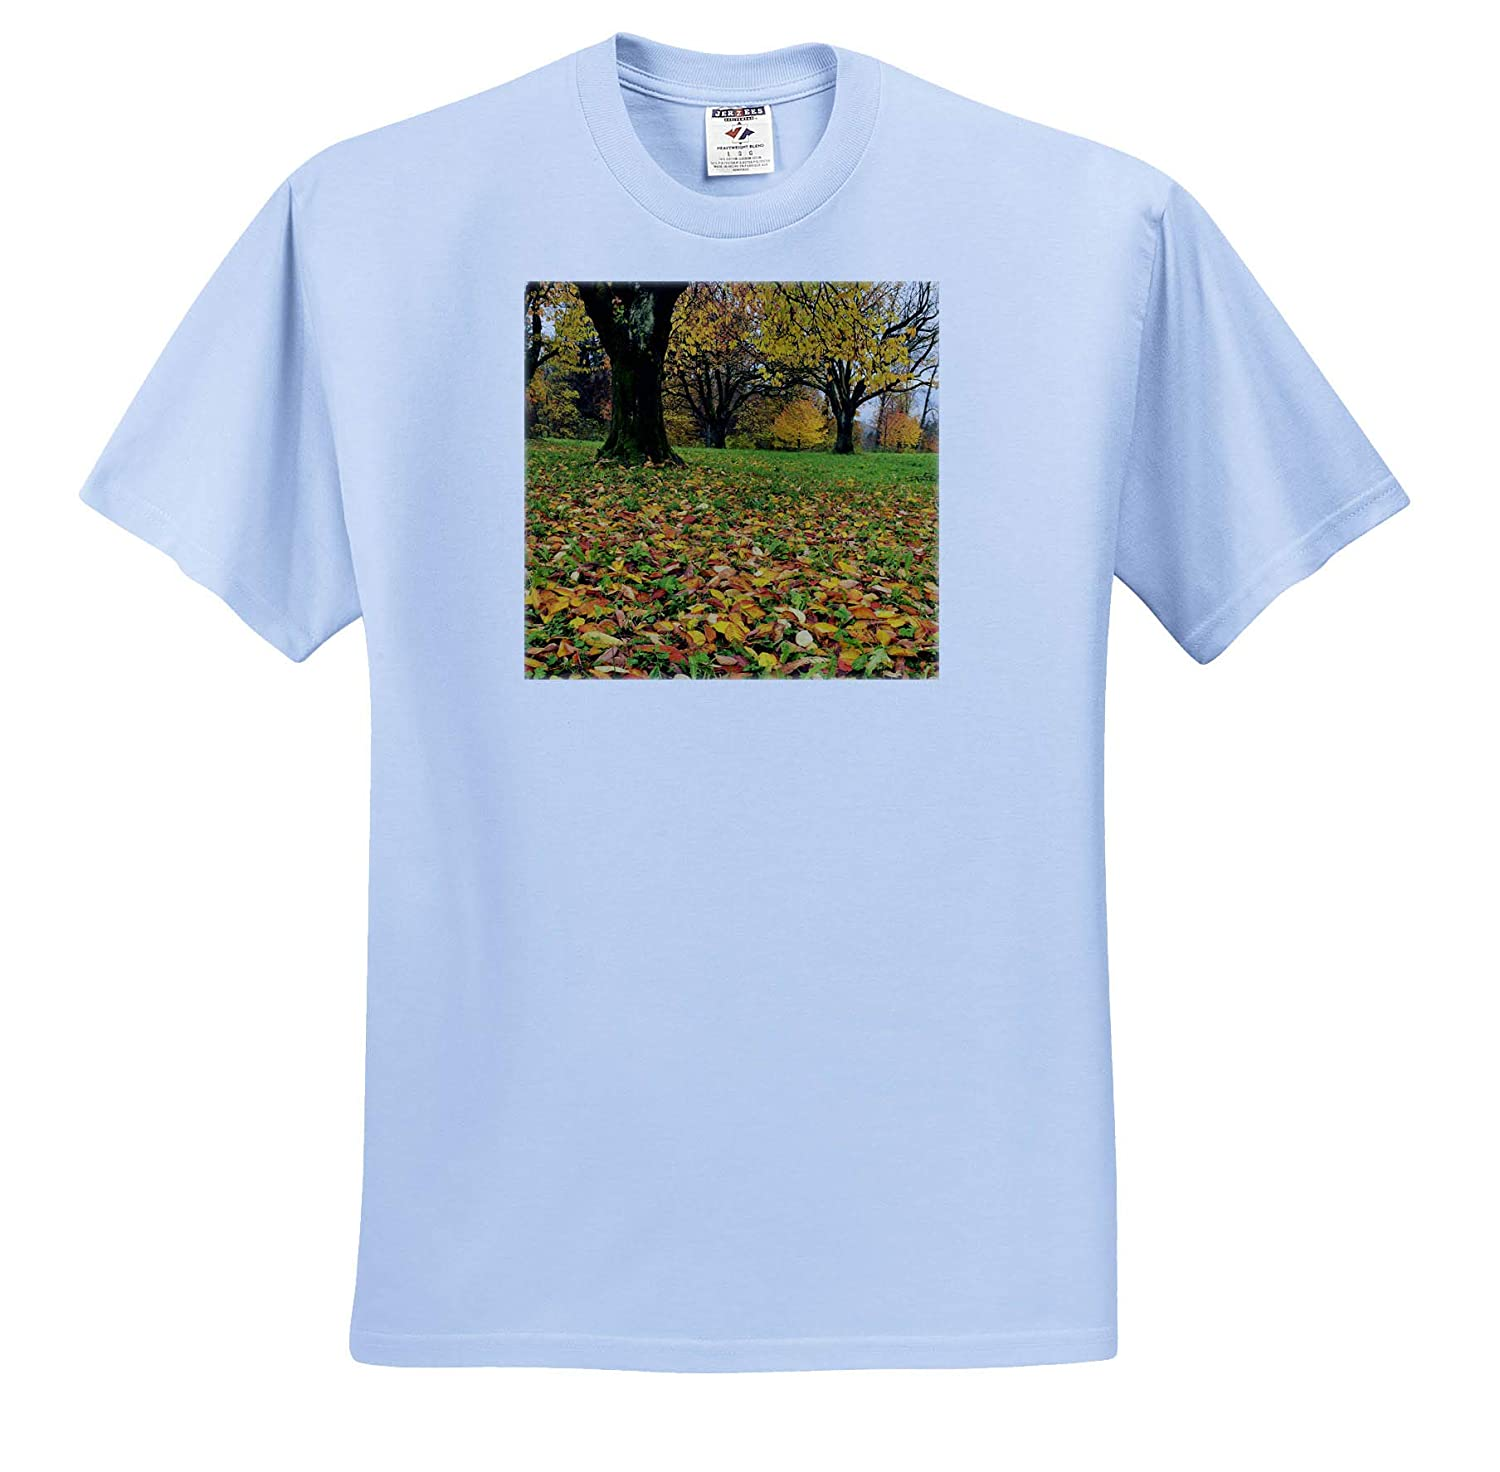 Fall Colors in Orchard Cherry Tree ts/_313874 3dRose Danita Delimont - Adult T-Shirt XL Autumn